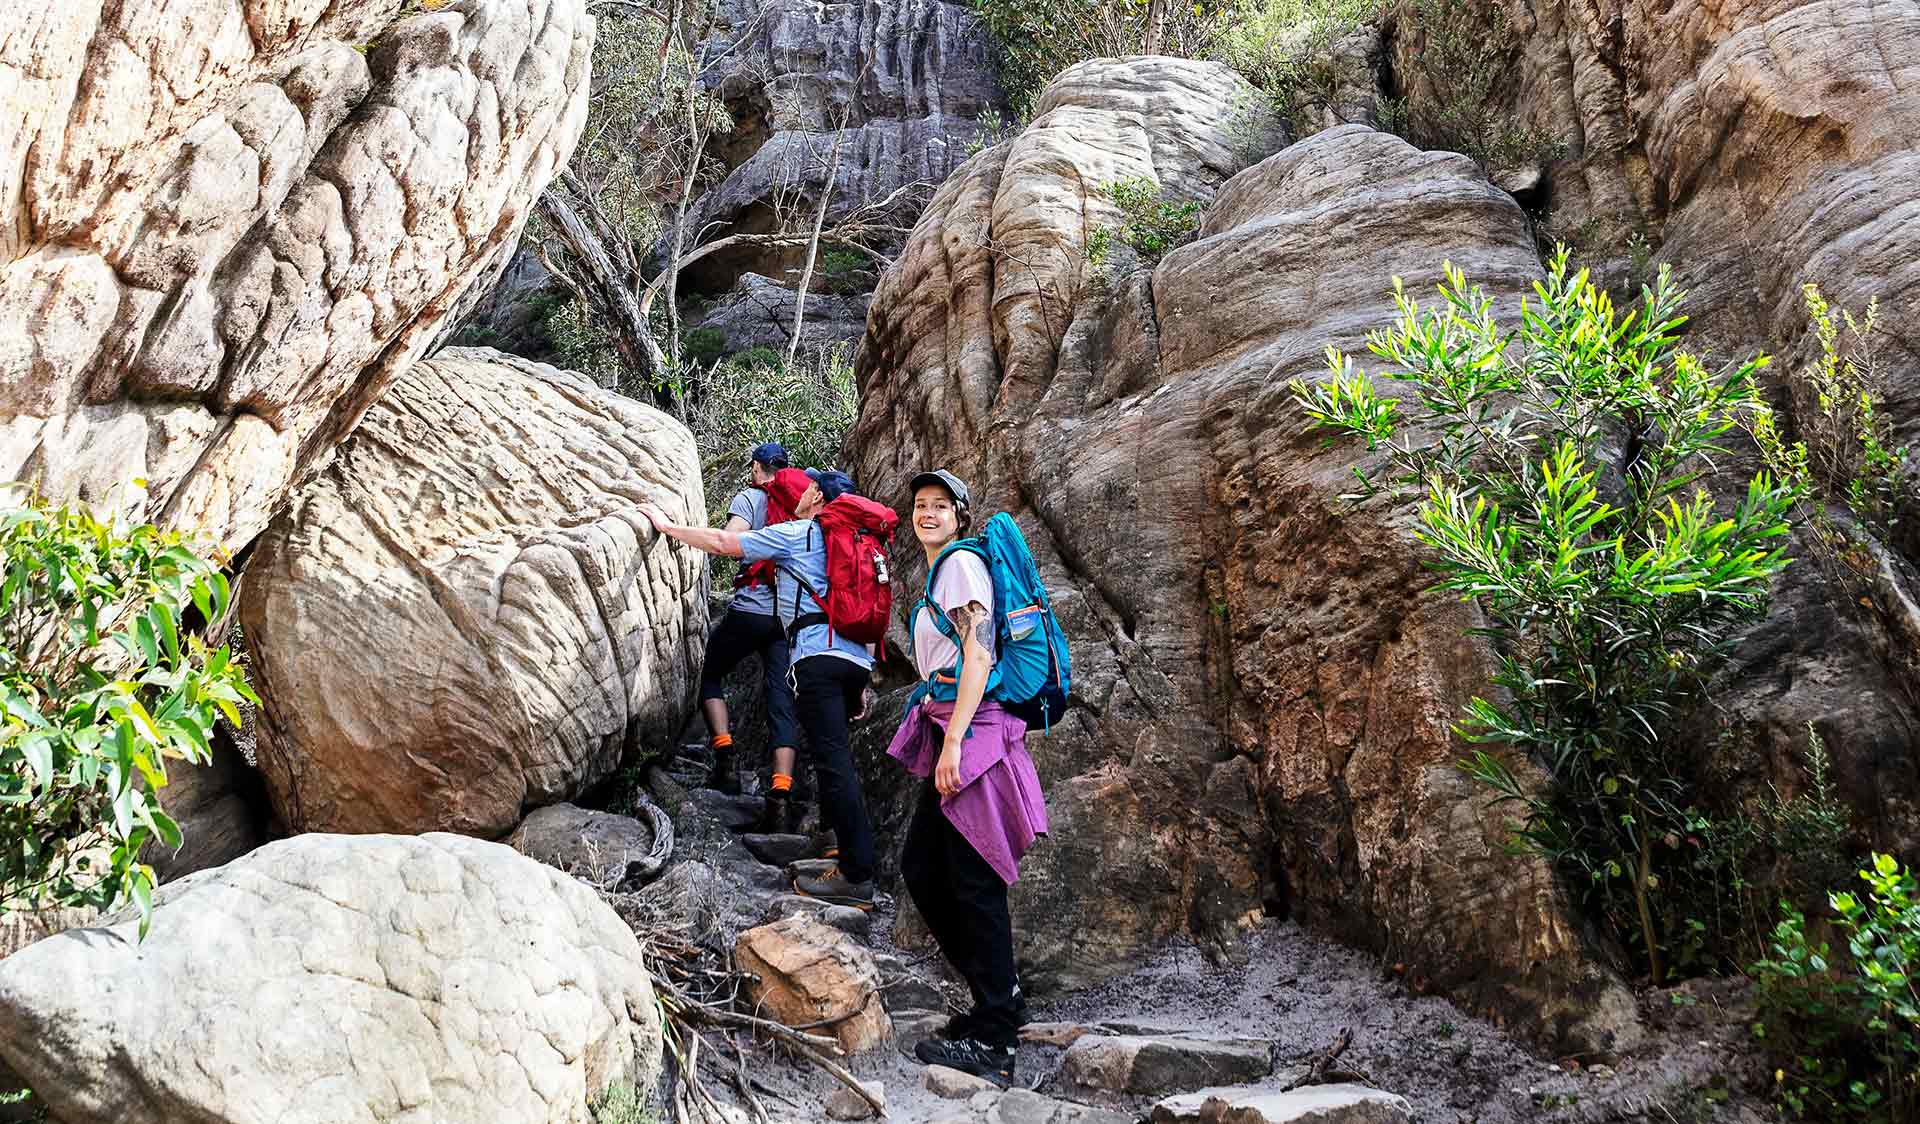 A group of three friends walk through the rocky ravines of the Northern Grampians.